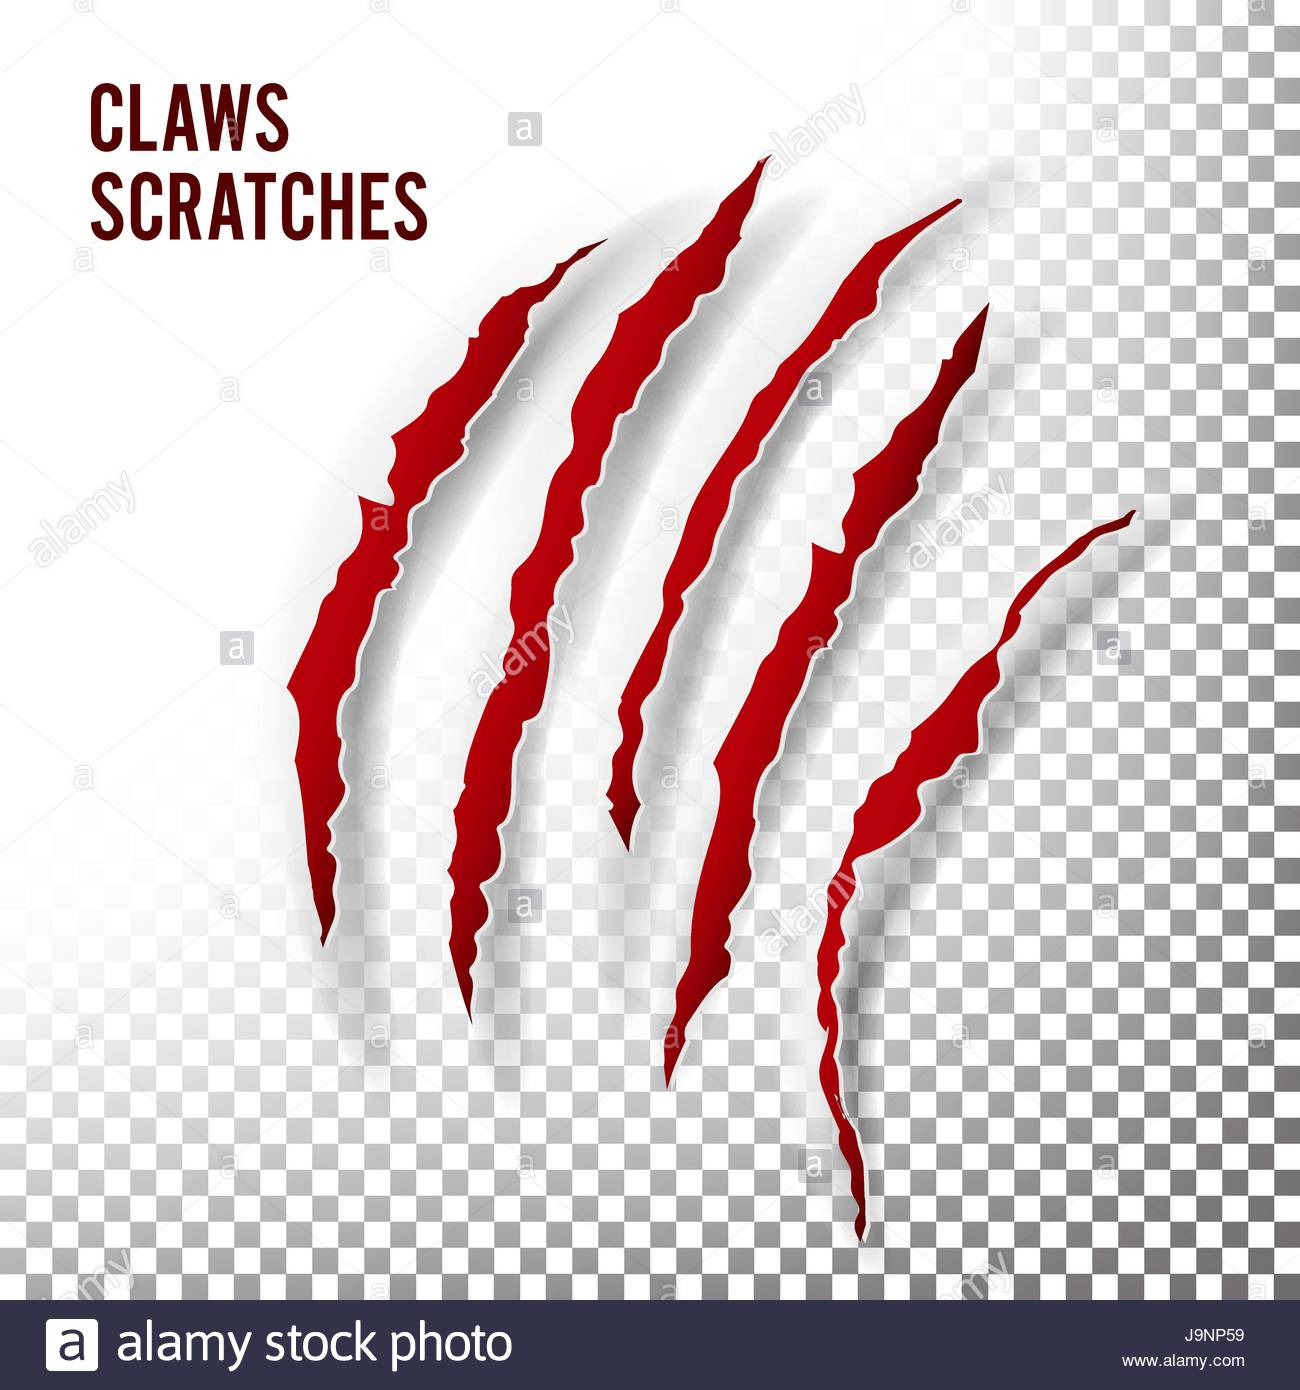 1300x1390 Claws Scratches Vector. Claw Scratch Mark. Bear Or Tiger Paw Claw